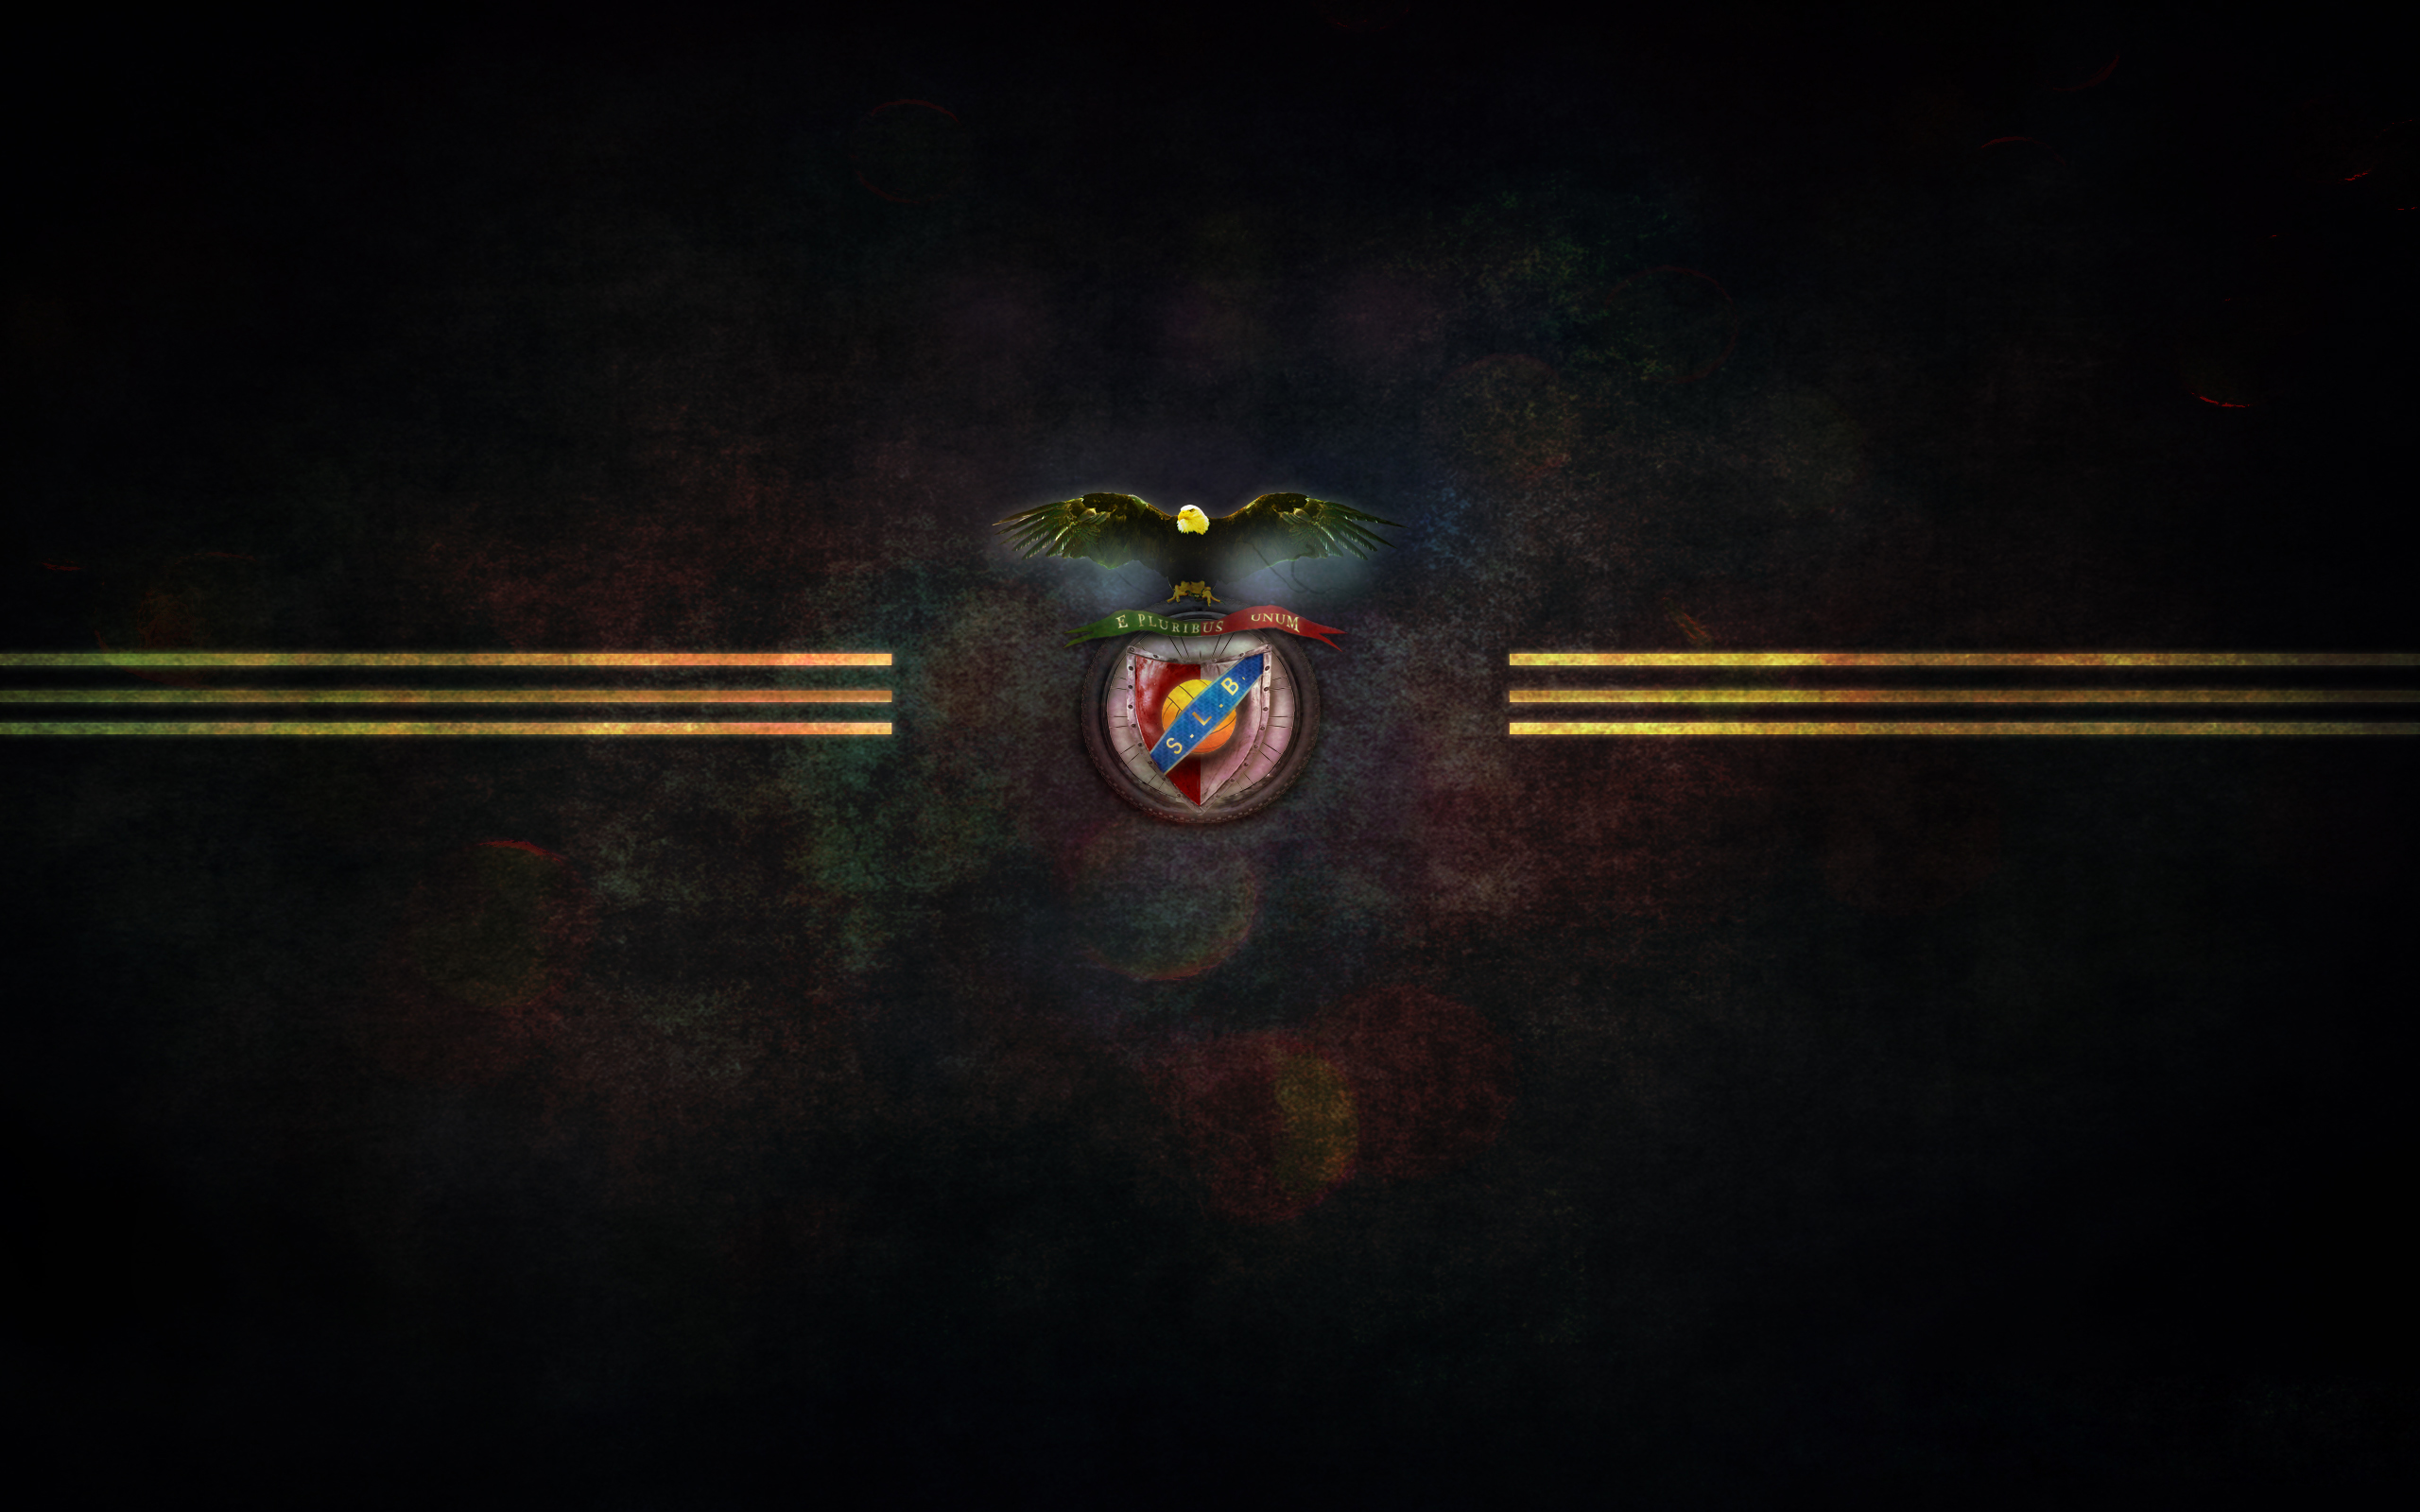 2560x1600 - S.L. Benfica Wallpapers 11